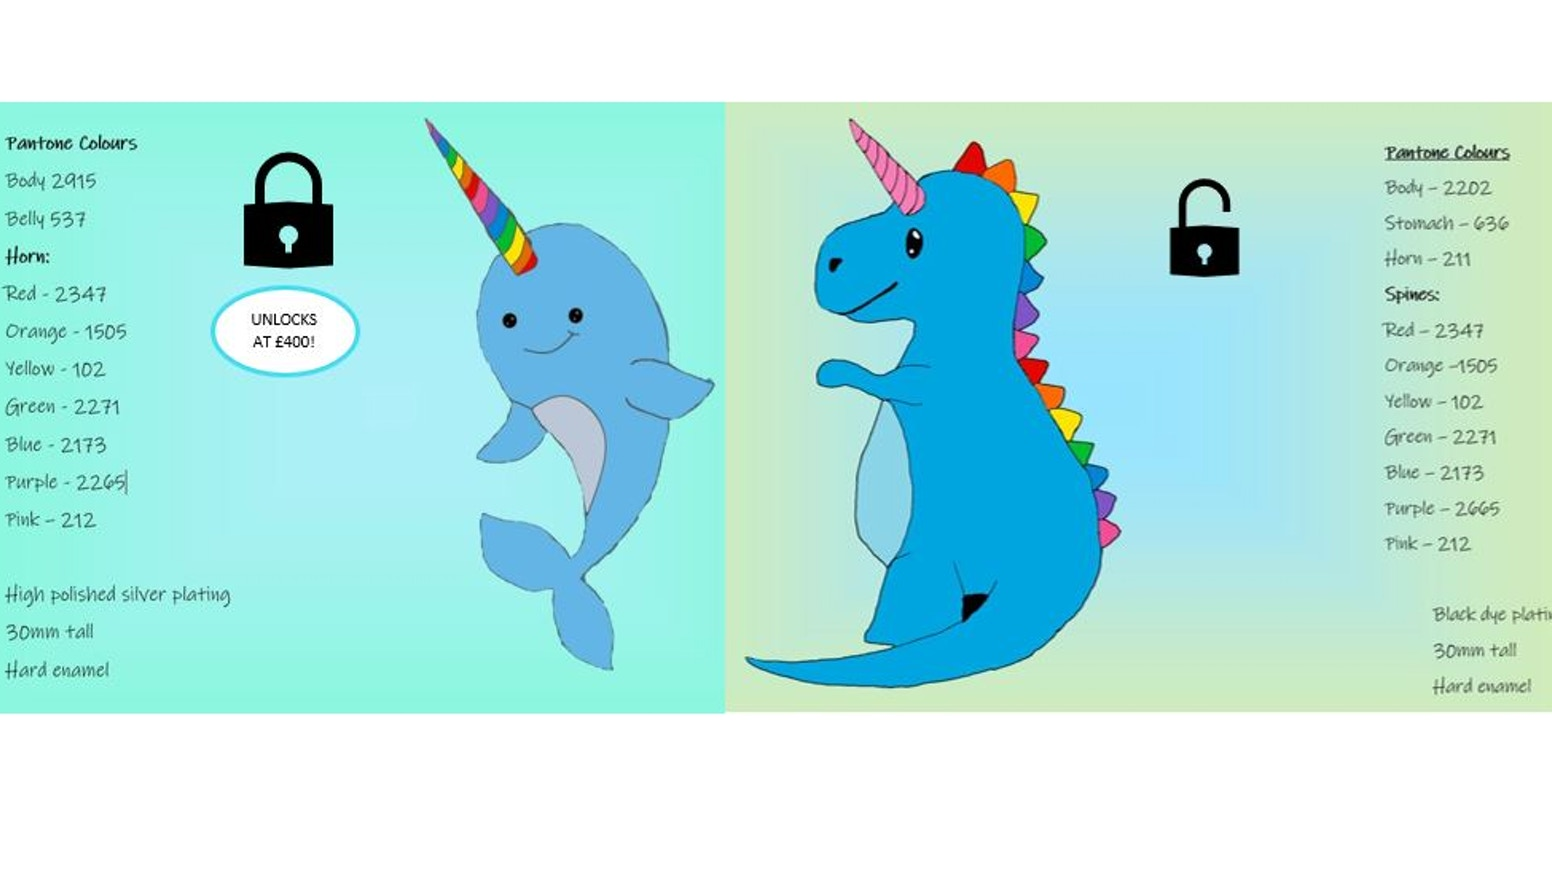 Rainbow Dinocorn and Narwhal hard enamel pin badges by Kayleigh Tait